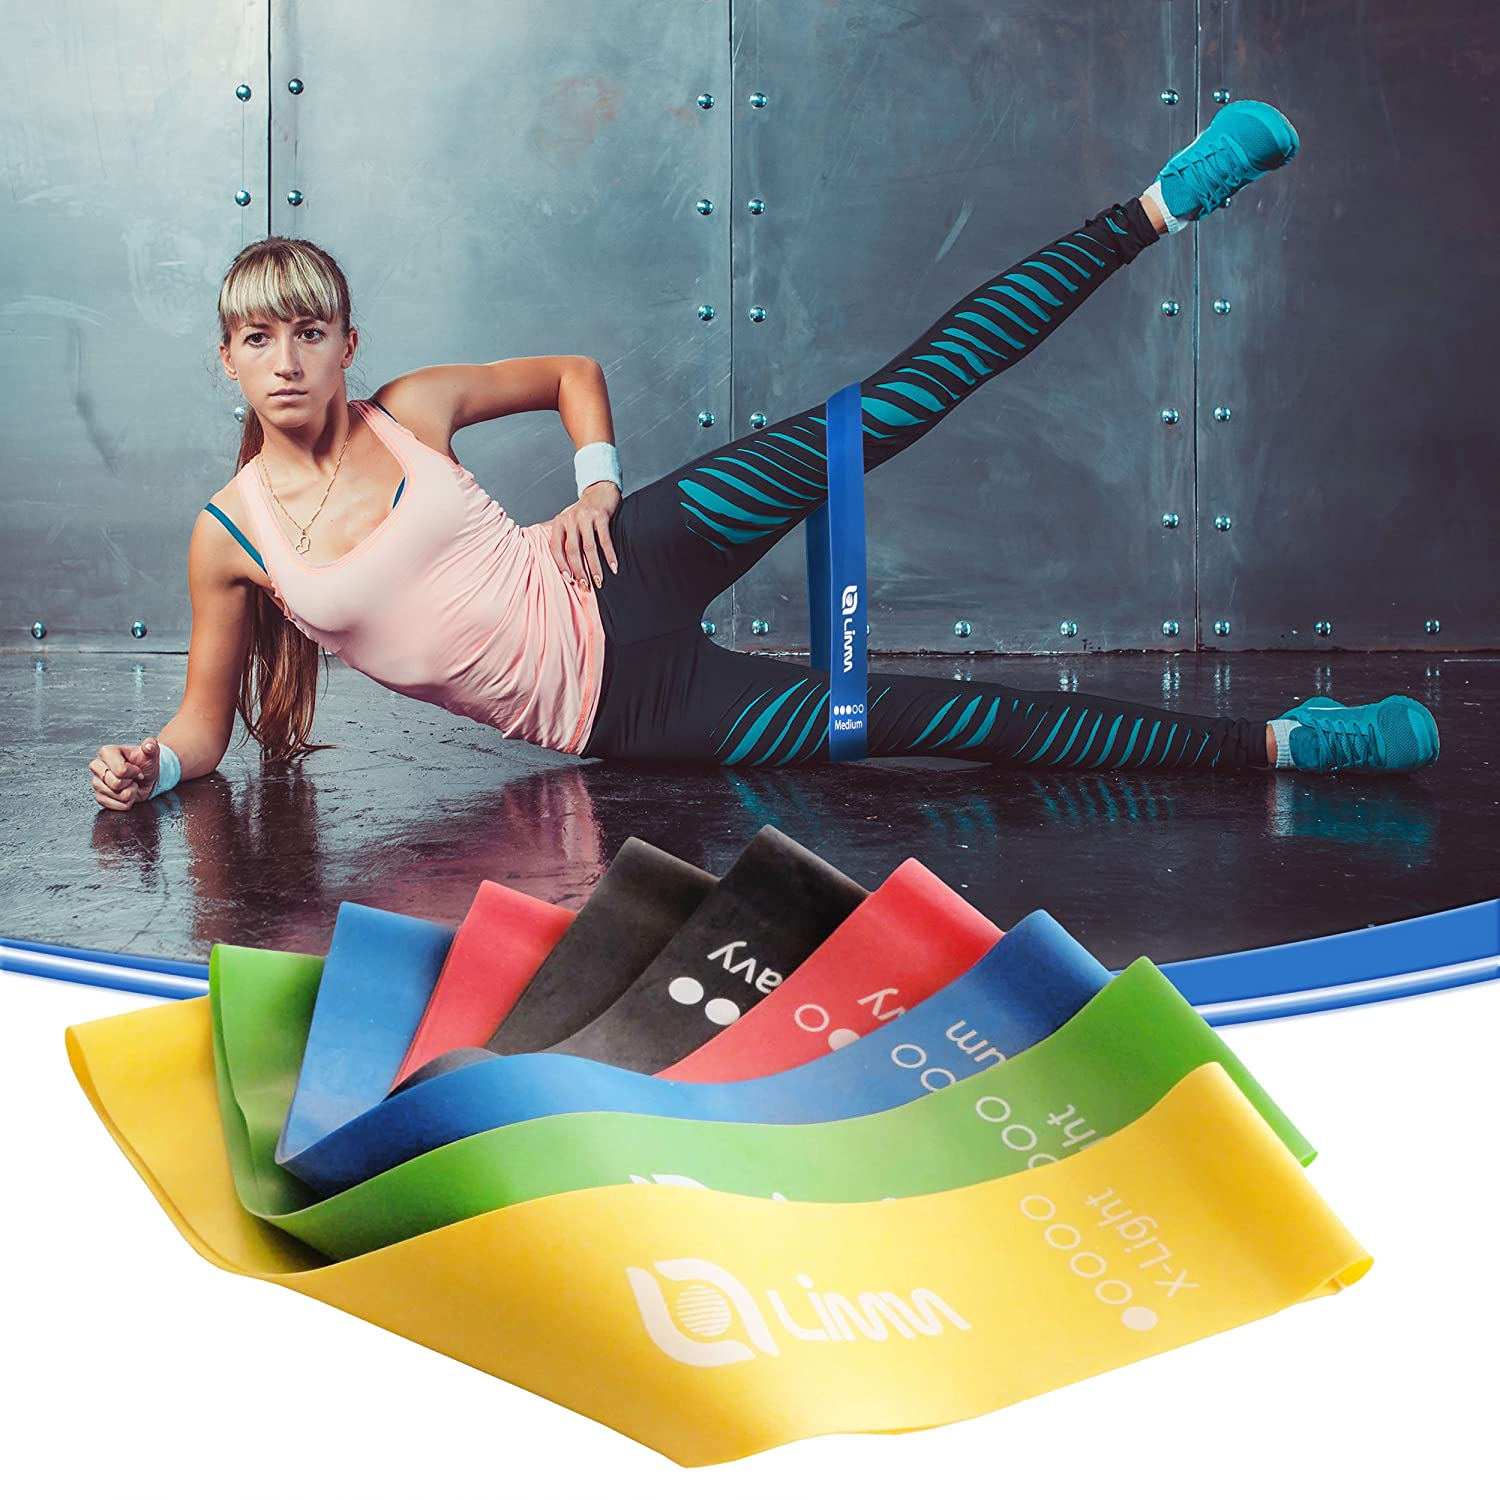 c9e465f894 Amazon.com   Limm Resistance Bands Exercise Loops - 12-inch Workout  Flexbands for Physical Therapy